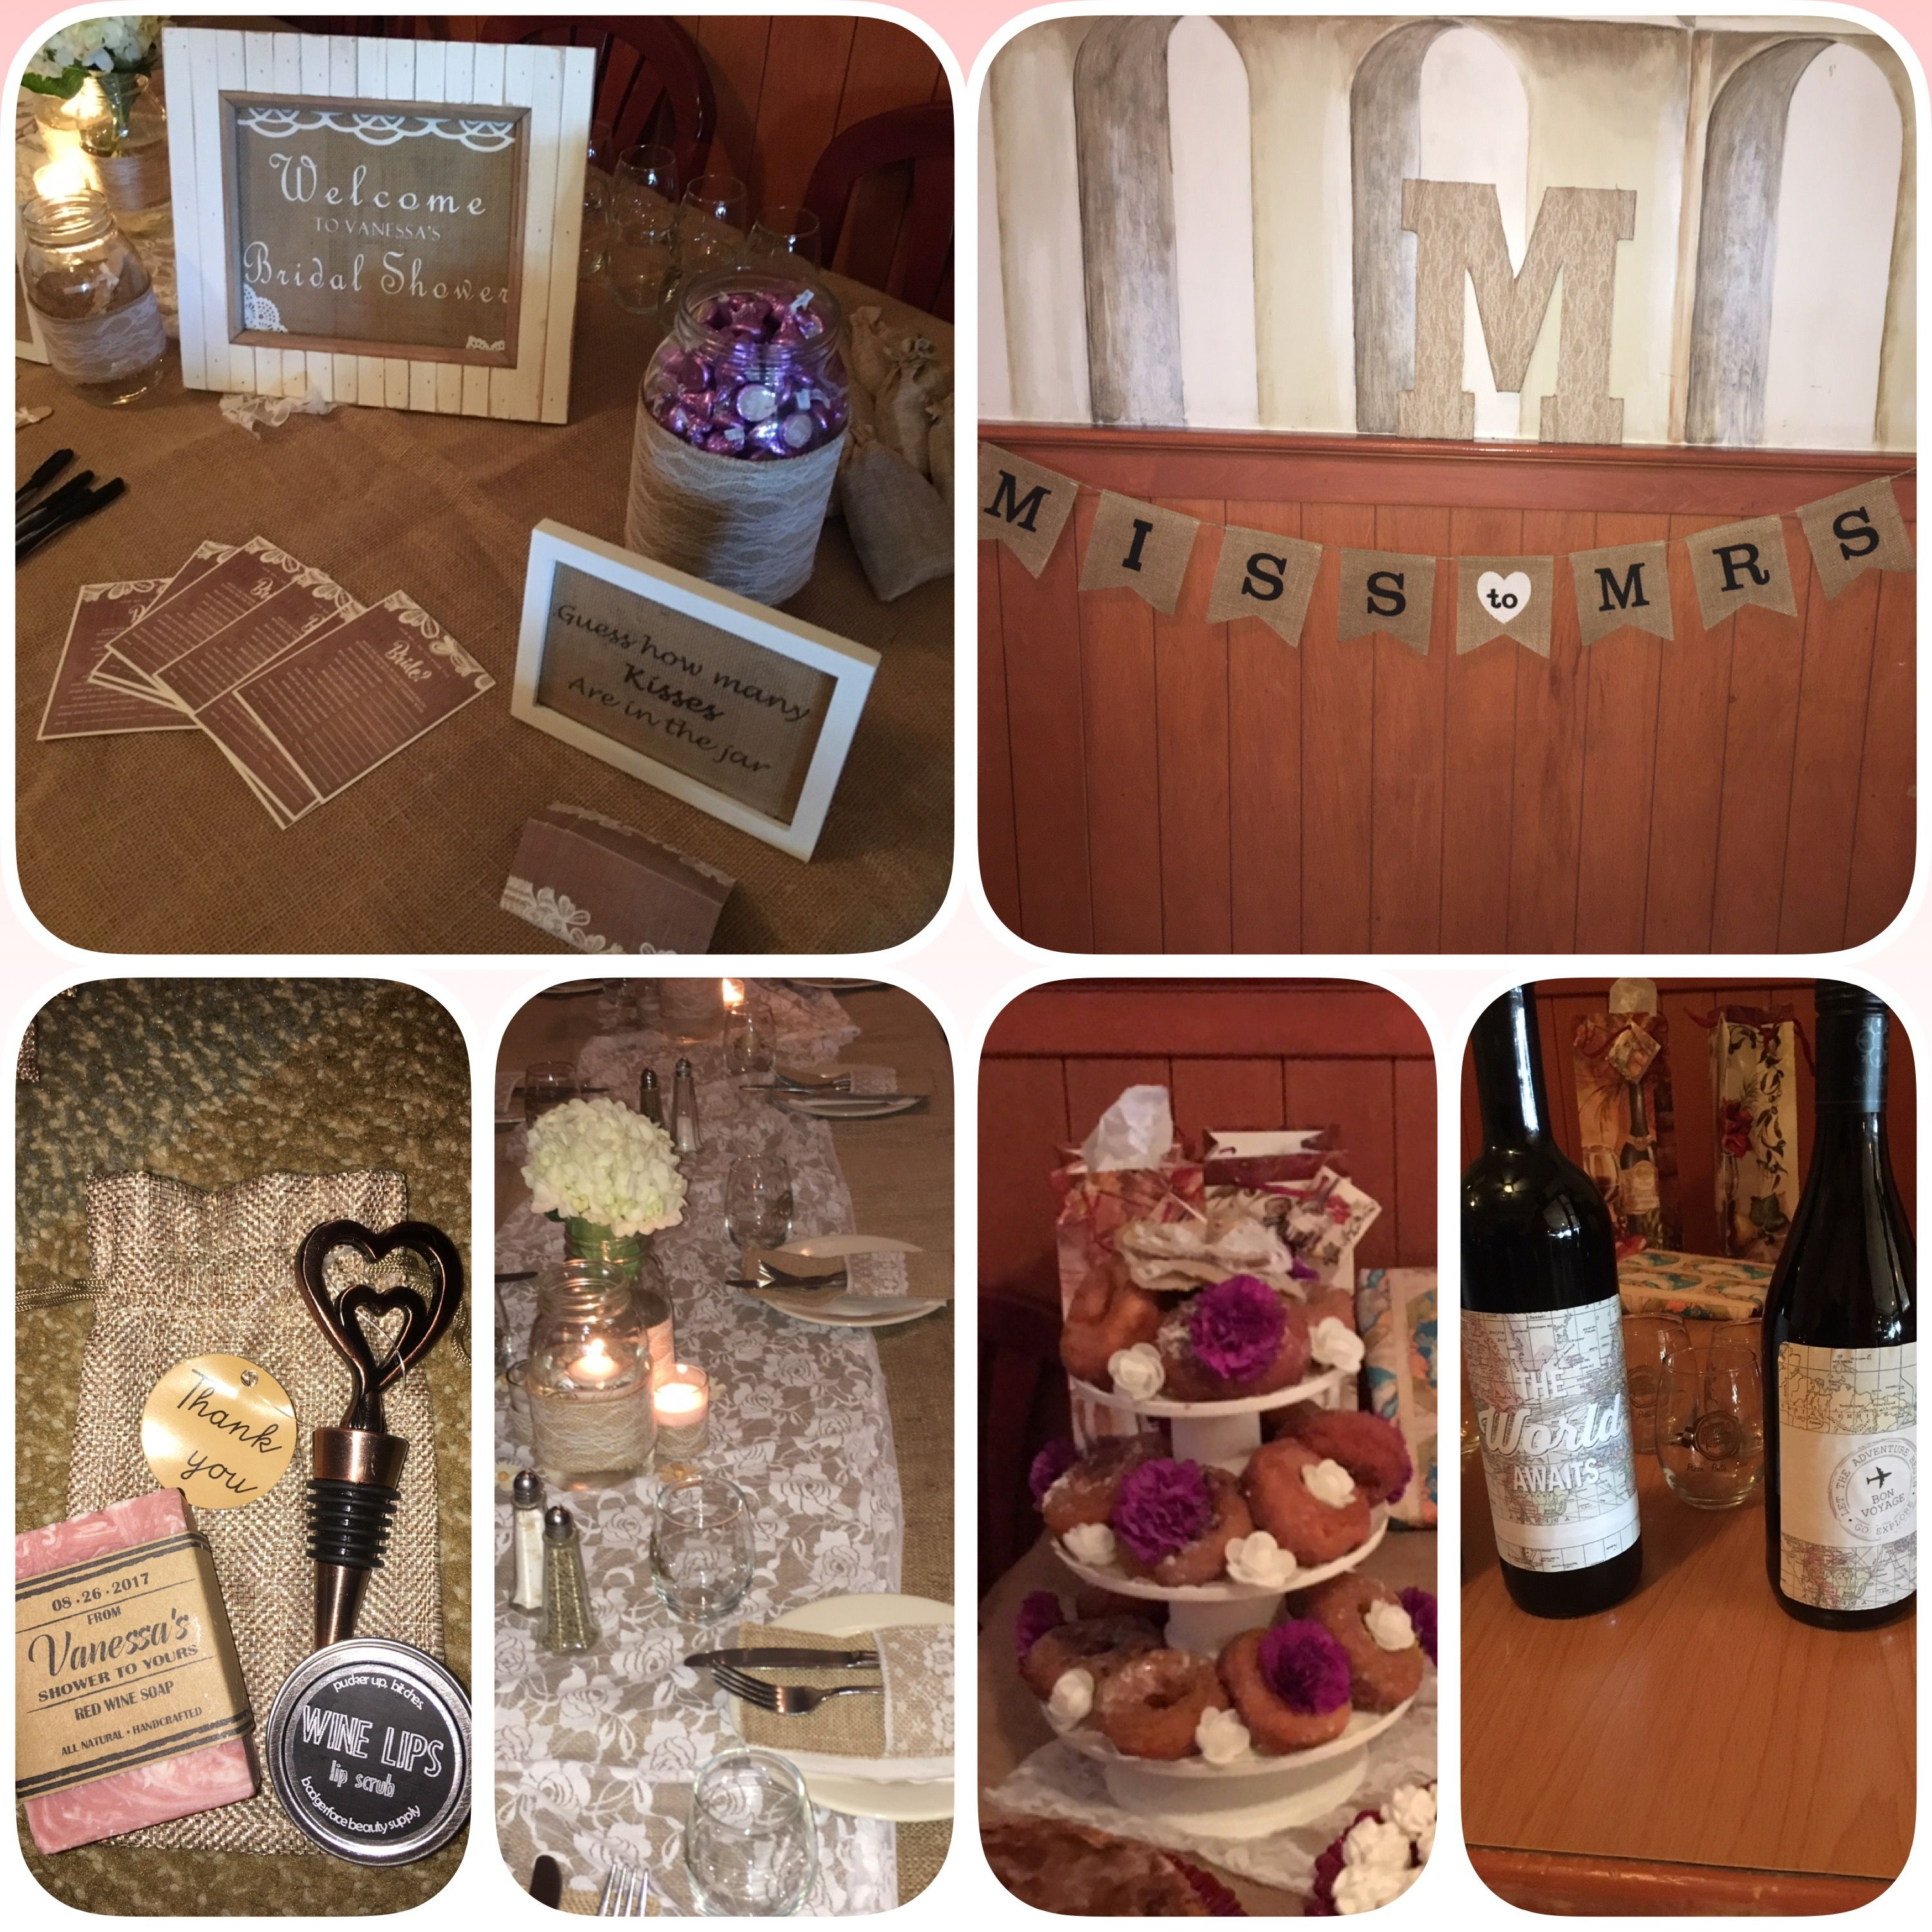 """Wine and travel themed bridal shower on a budget with burlap and lace decor. Homemade burlap/lace wrapped Mason jars, tea candles, giant """"M"""", and party signs. Most items can be purchased at Walmart or Michael's and put together at a very reasonable price with a regular computer printer and a hot glue gun. These decorations were time consuming, but well worth it in the end."""